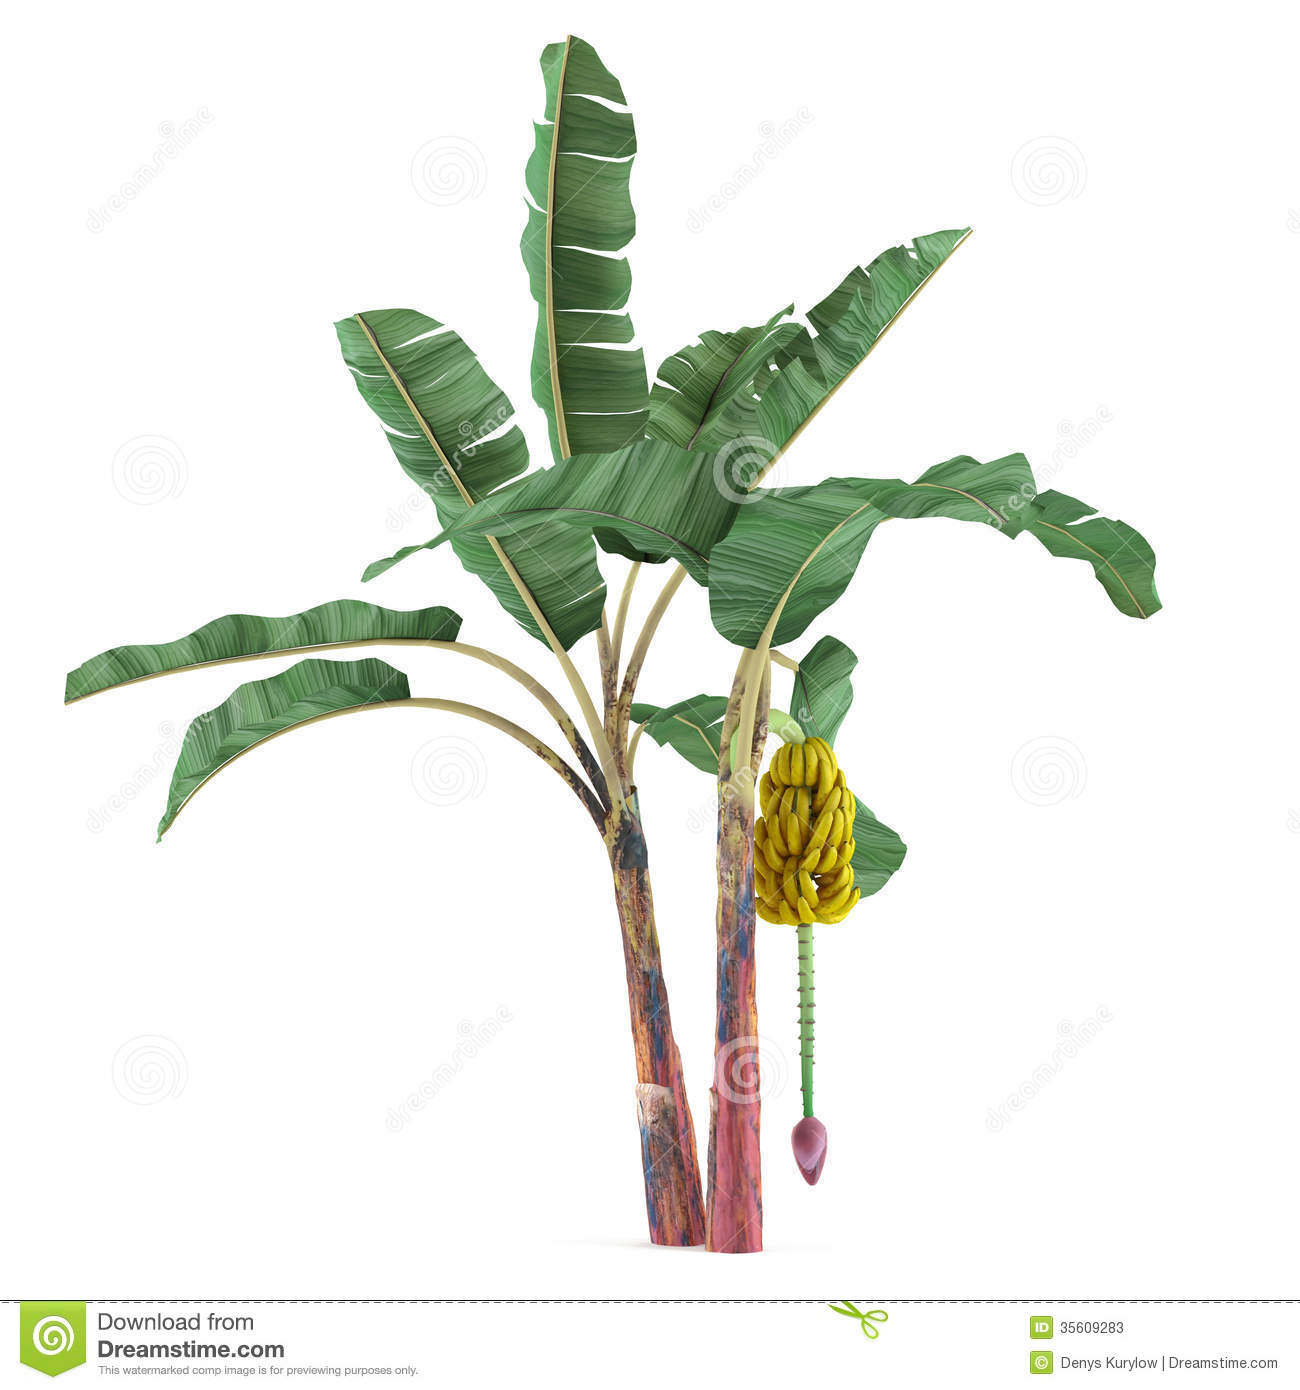 Palm Plant Tree Isolated Musa Acuminata Banana Botanic Jungle